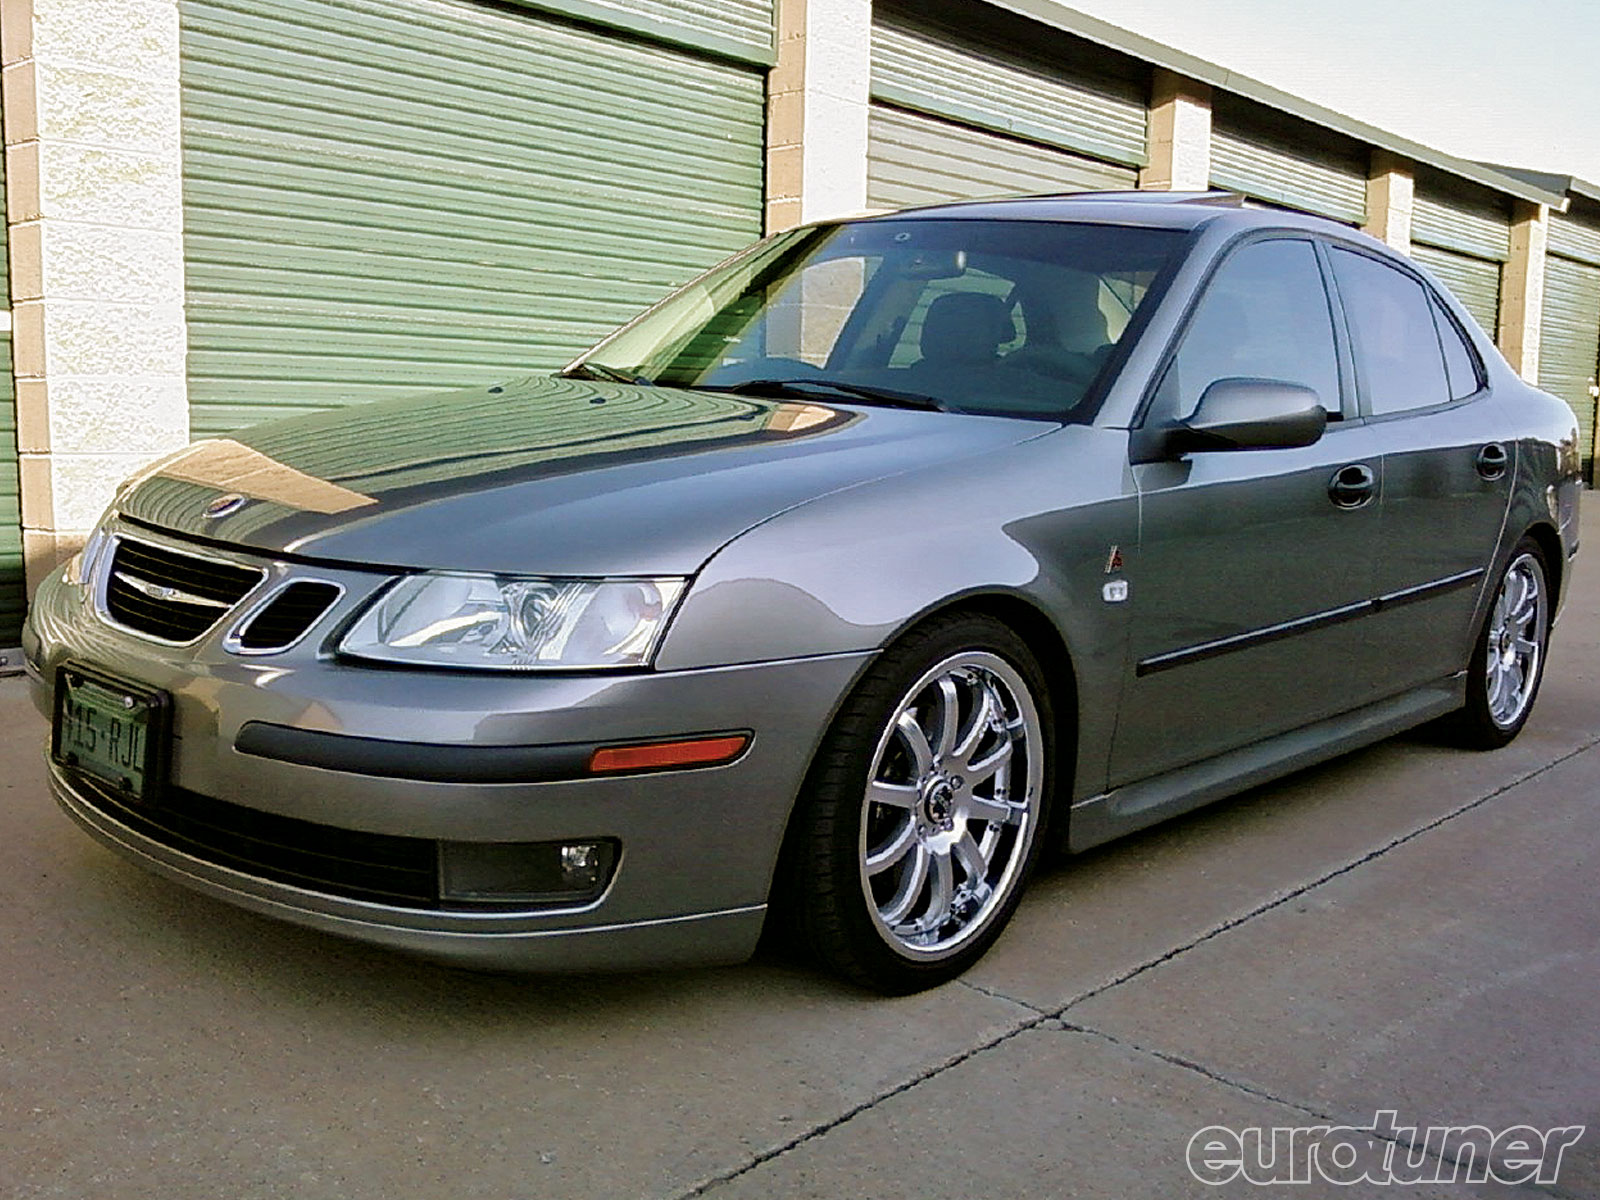 2005 saab 9 3 partsopen. Black Bedroom Furniture Sets. Home Design Ideas